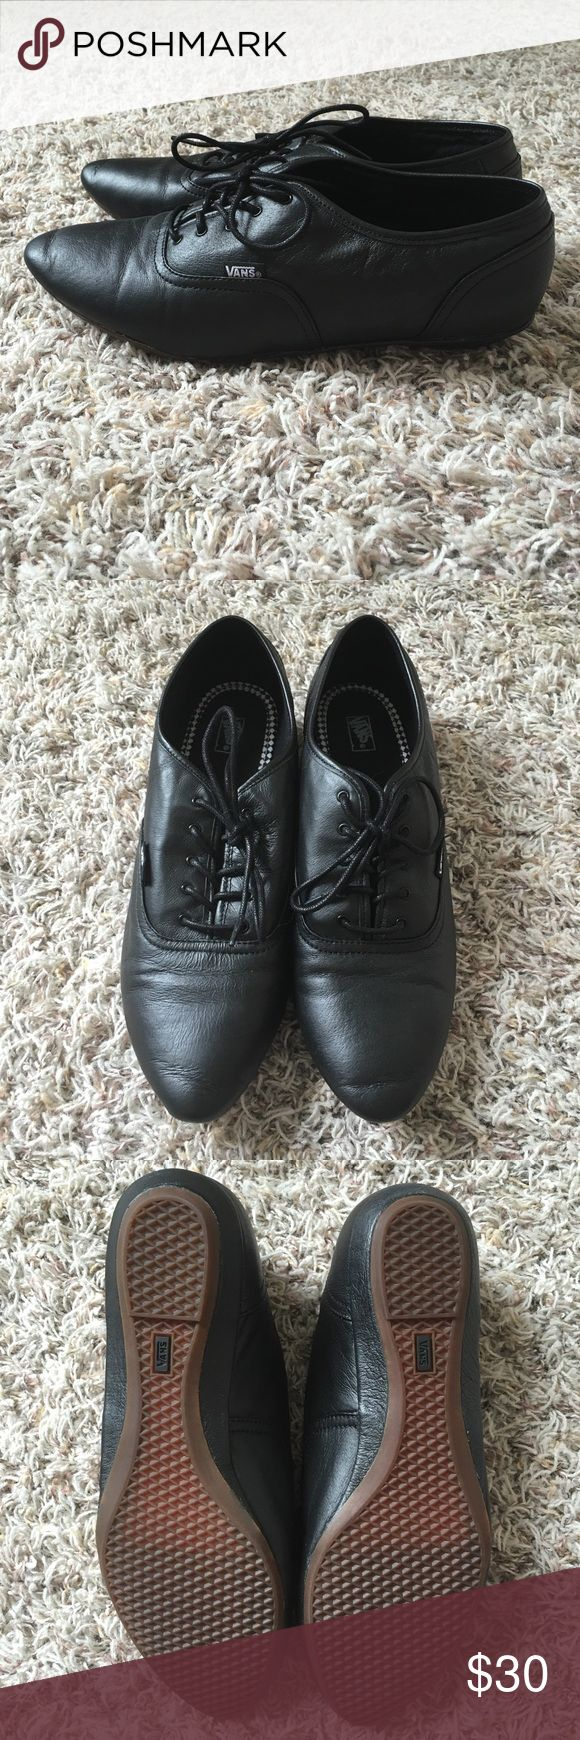 Leather Vans These black leather vans with a pointy toe are super cute! My favorite way to see these is with a rolled up pair of skinny jeans, but you can really wear them with anything. Only wore these a couple times and still look brand new! Has a 0.75 inch mini wedge heel for that extra boost. Vans Shoes